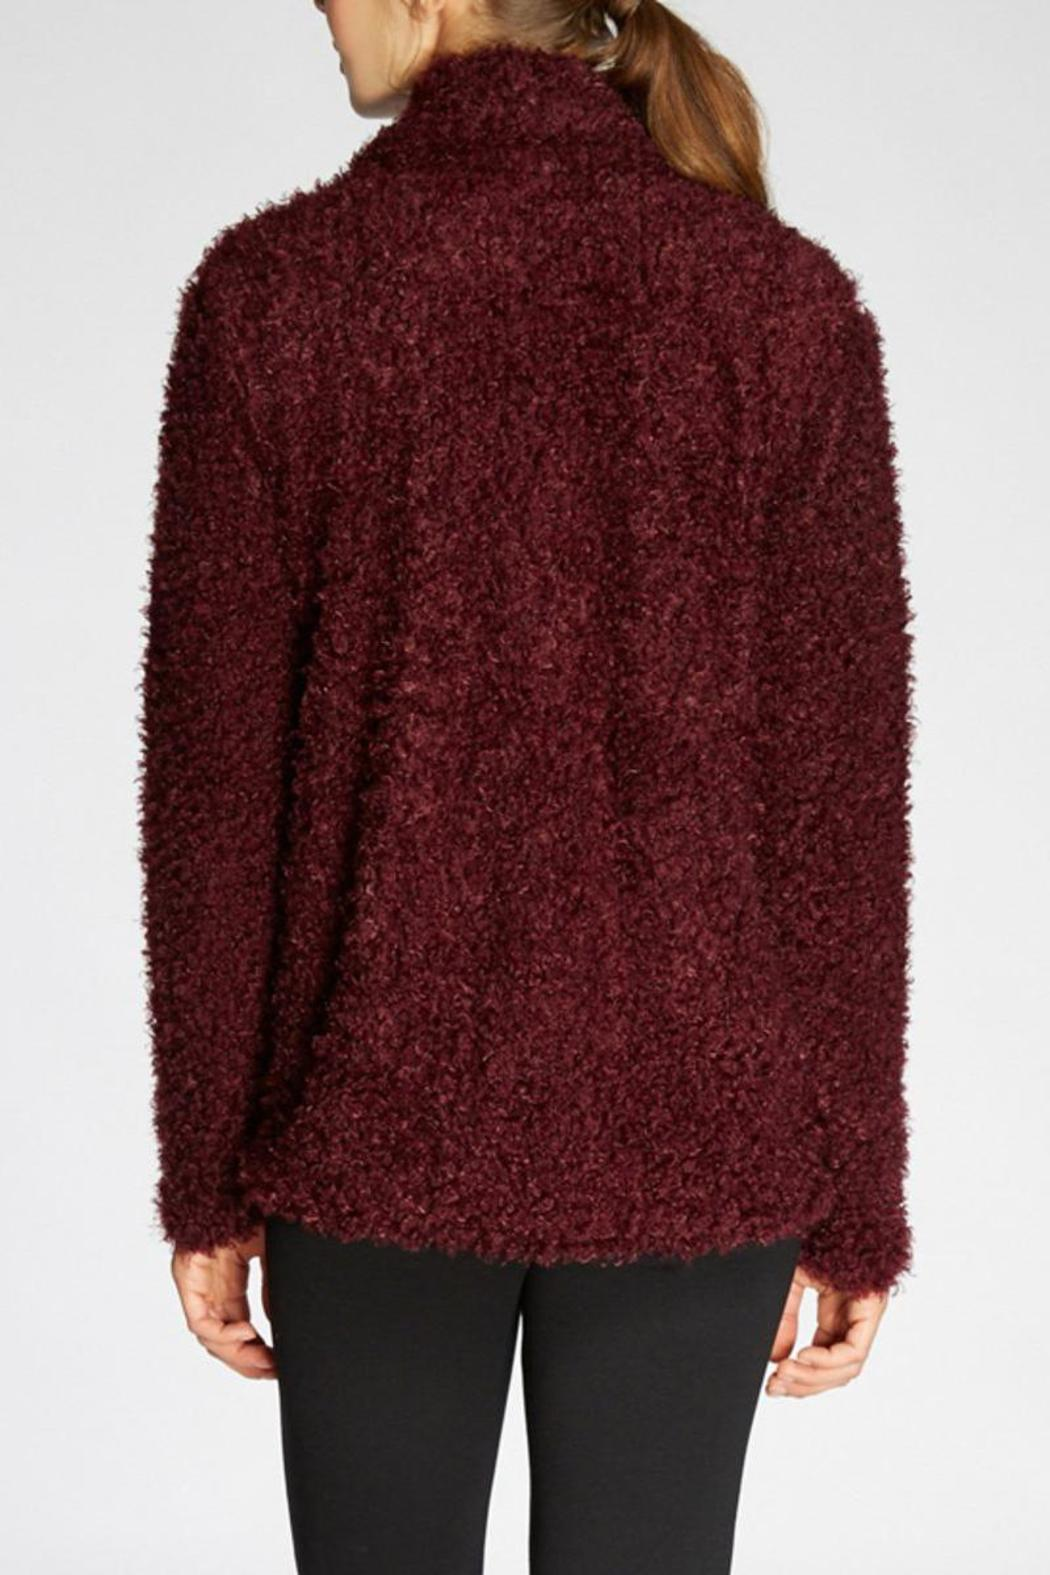 The Dressing Room Fuzzy Burgundy Jacket - Side Cropped Image